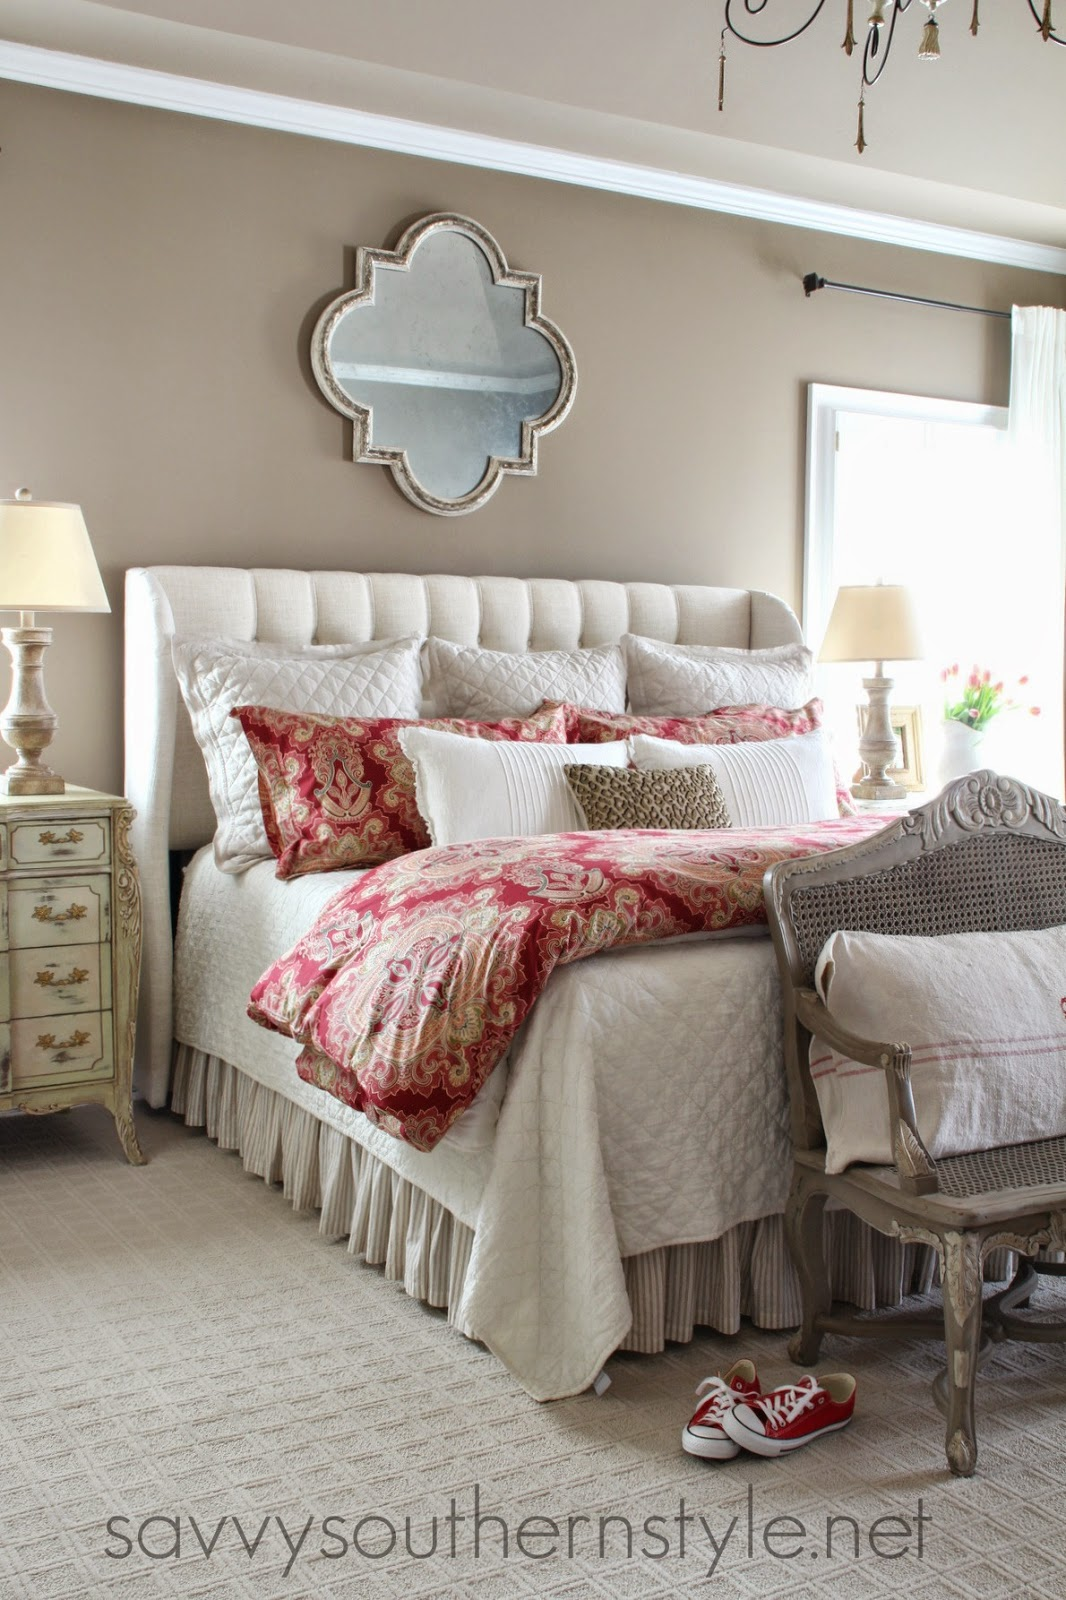 Alexandria beige favorite paint colors bloglovin for Best color bed sheets